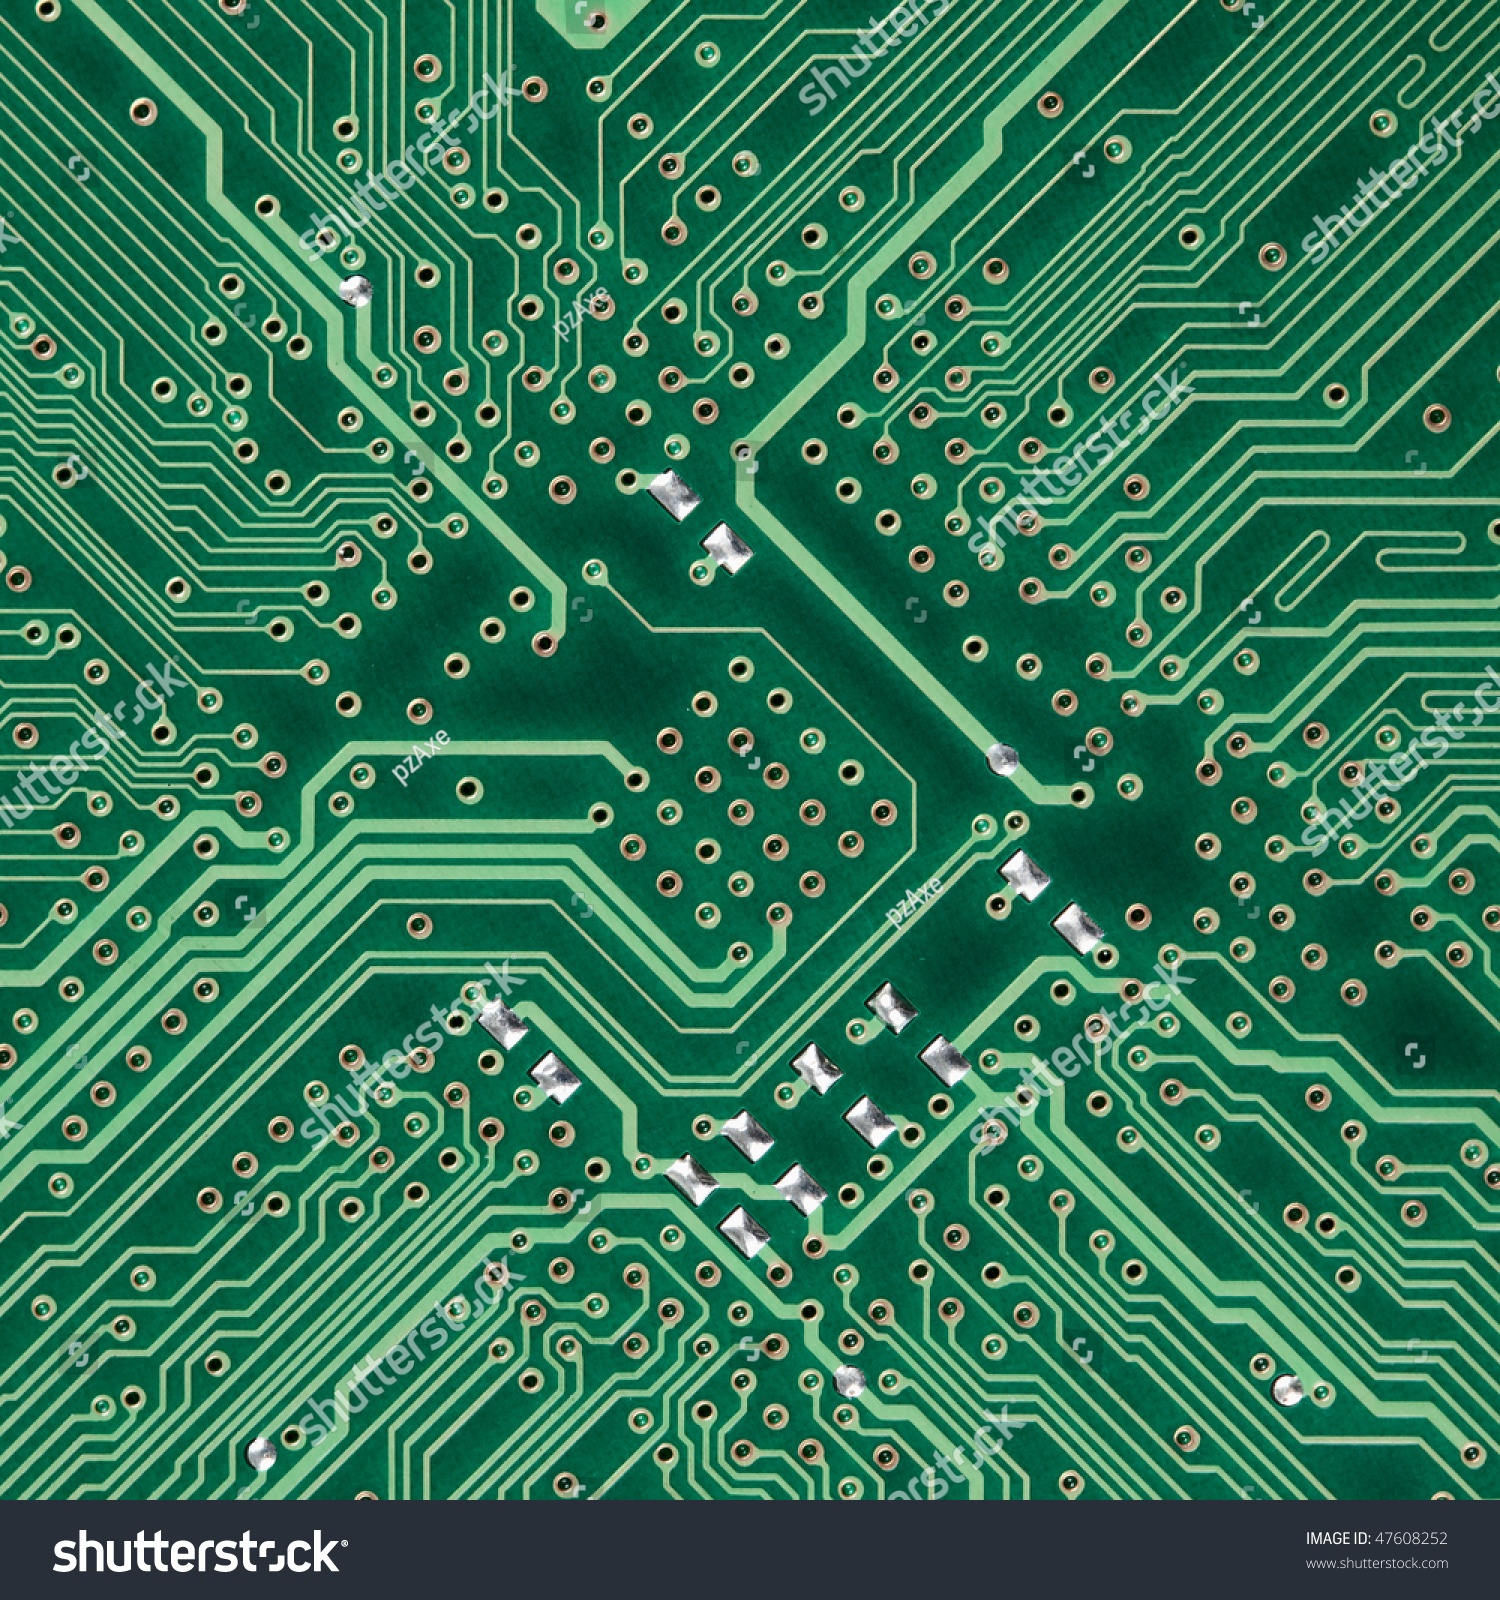 With Signal Paths On Pcb Board Integrated Circuit Top View Flat Lay